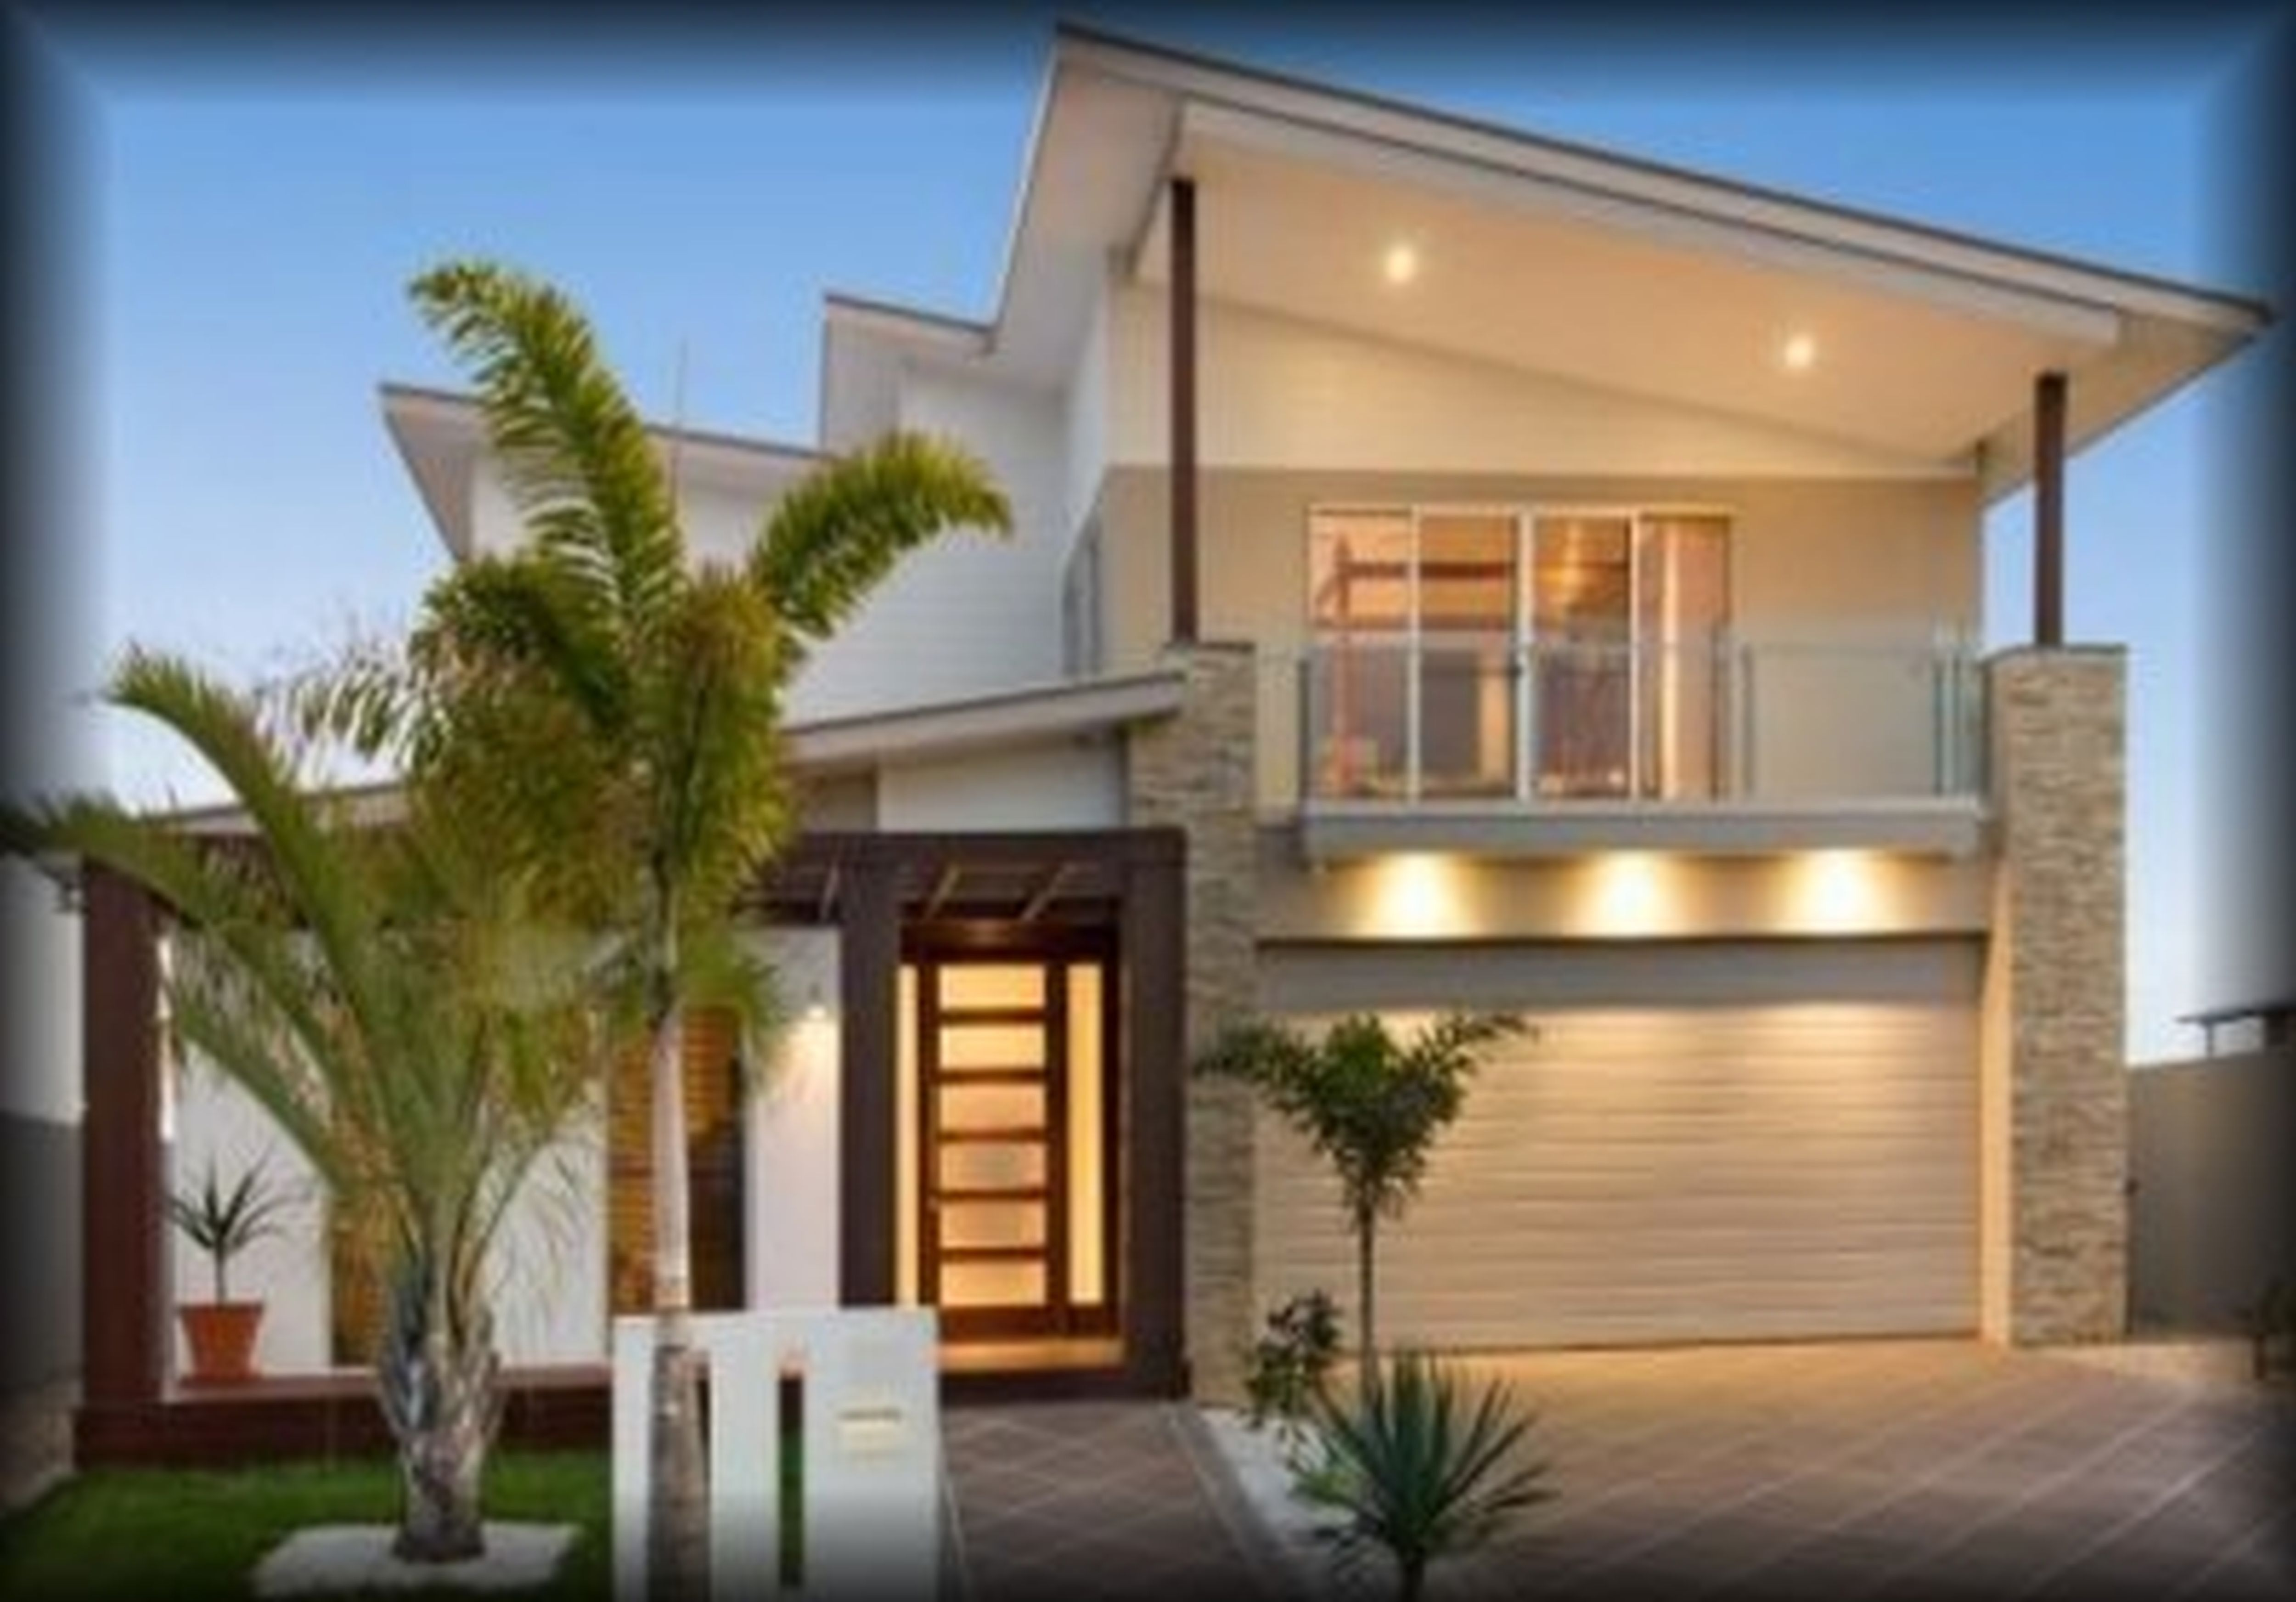 Small house design storey house designs and floor plans for Beautiful small home designs